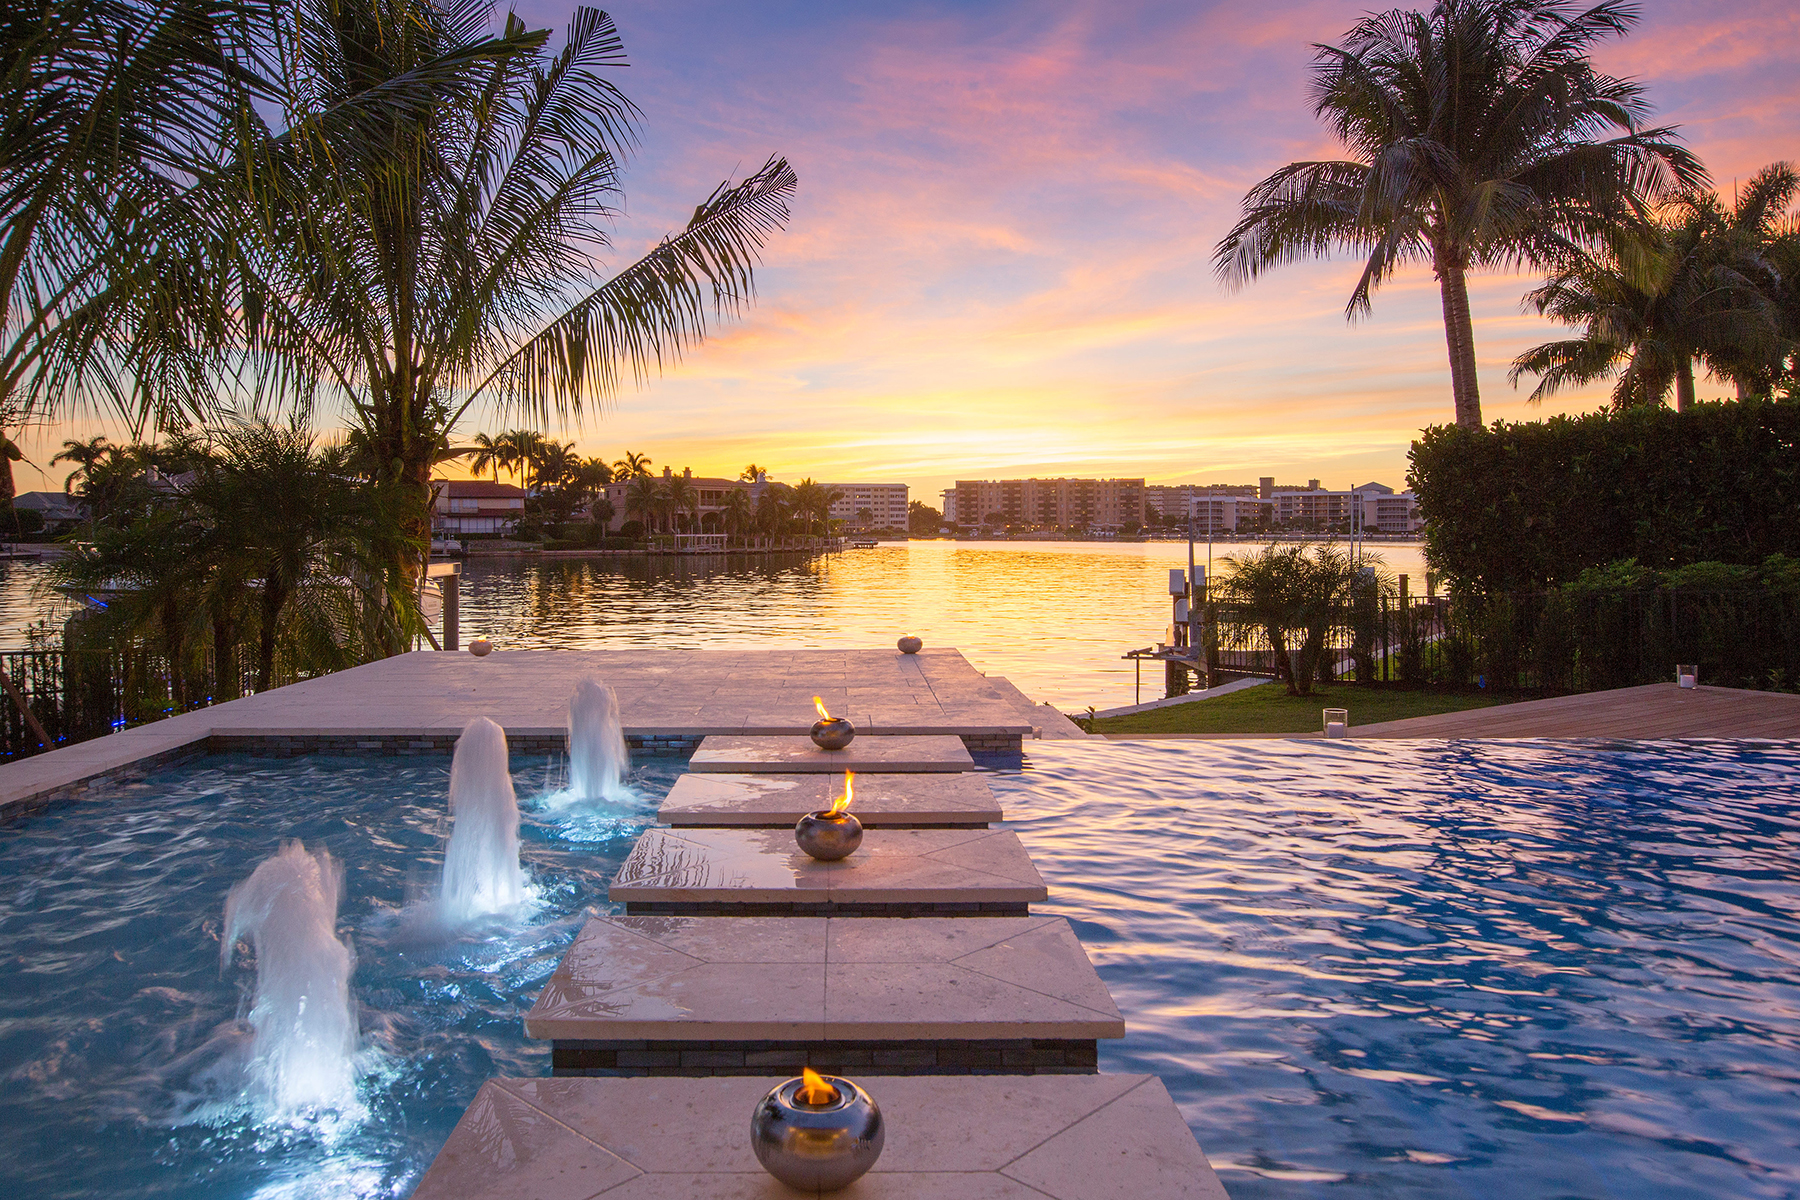 Single Family Home for Sale at PARK SHORE 300 Mermaids, Naples, Florida 34103 United States